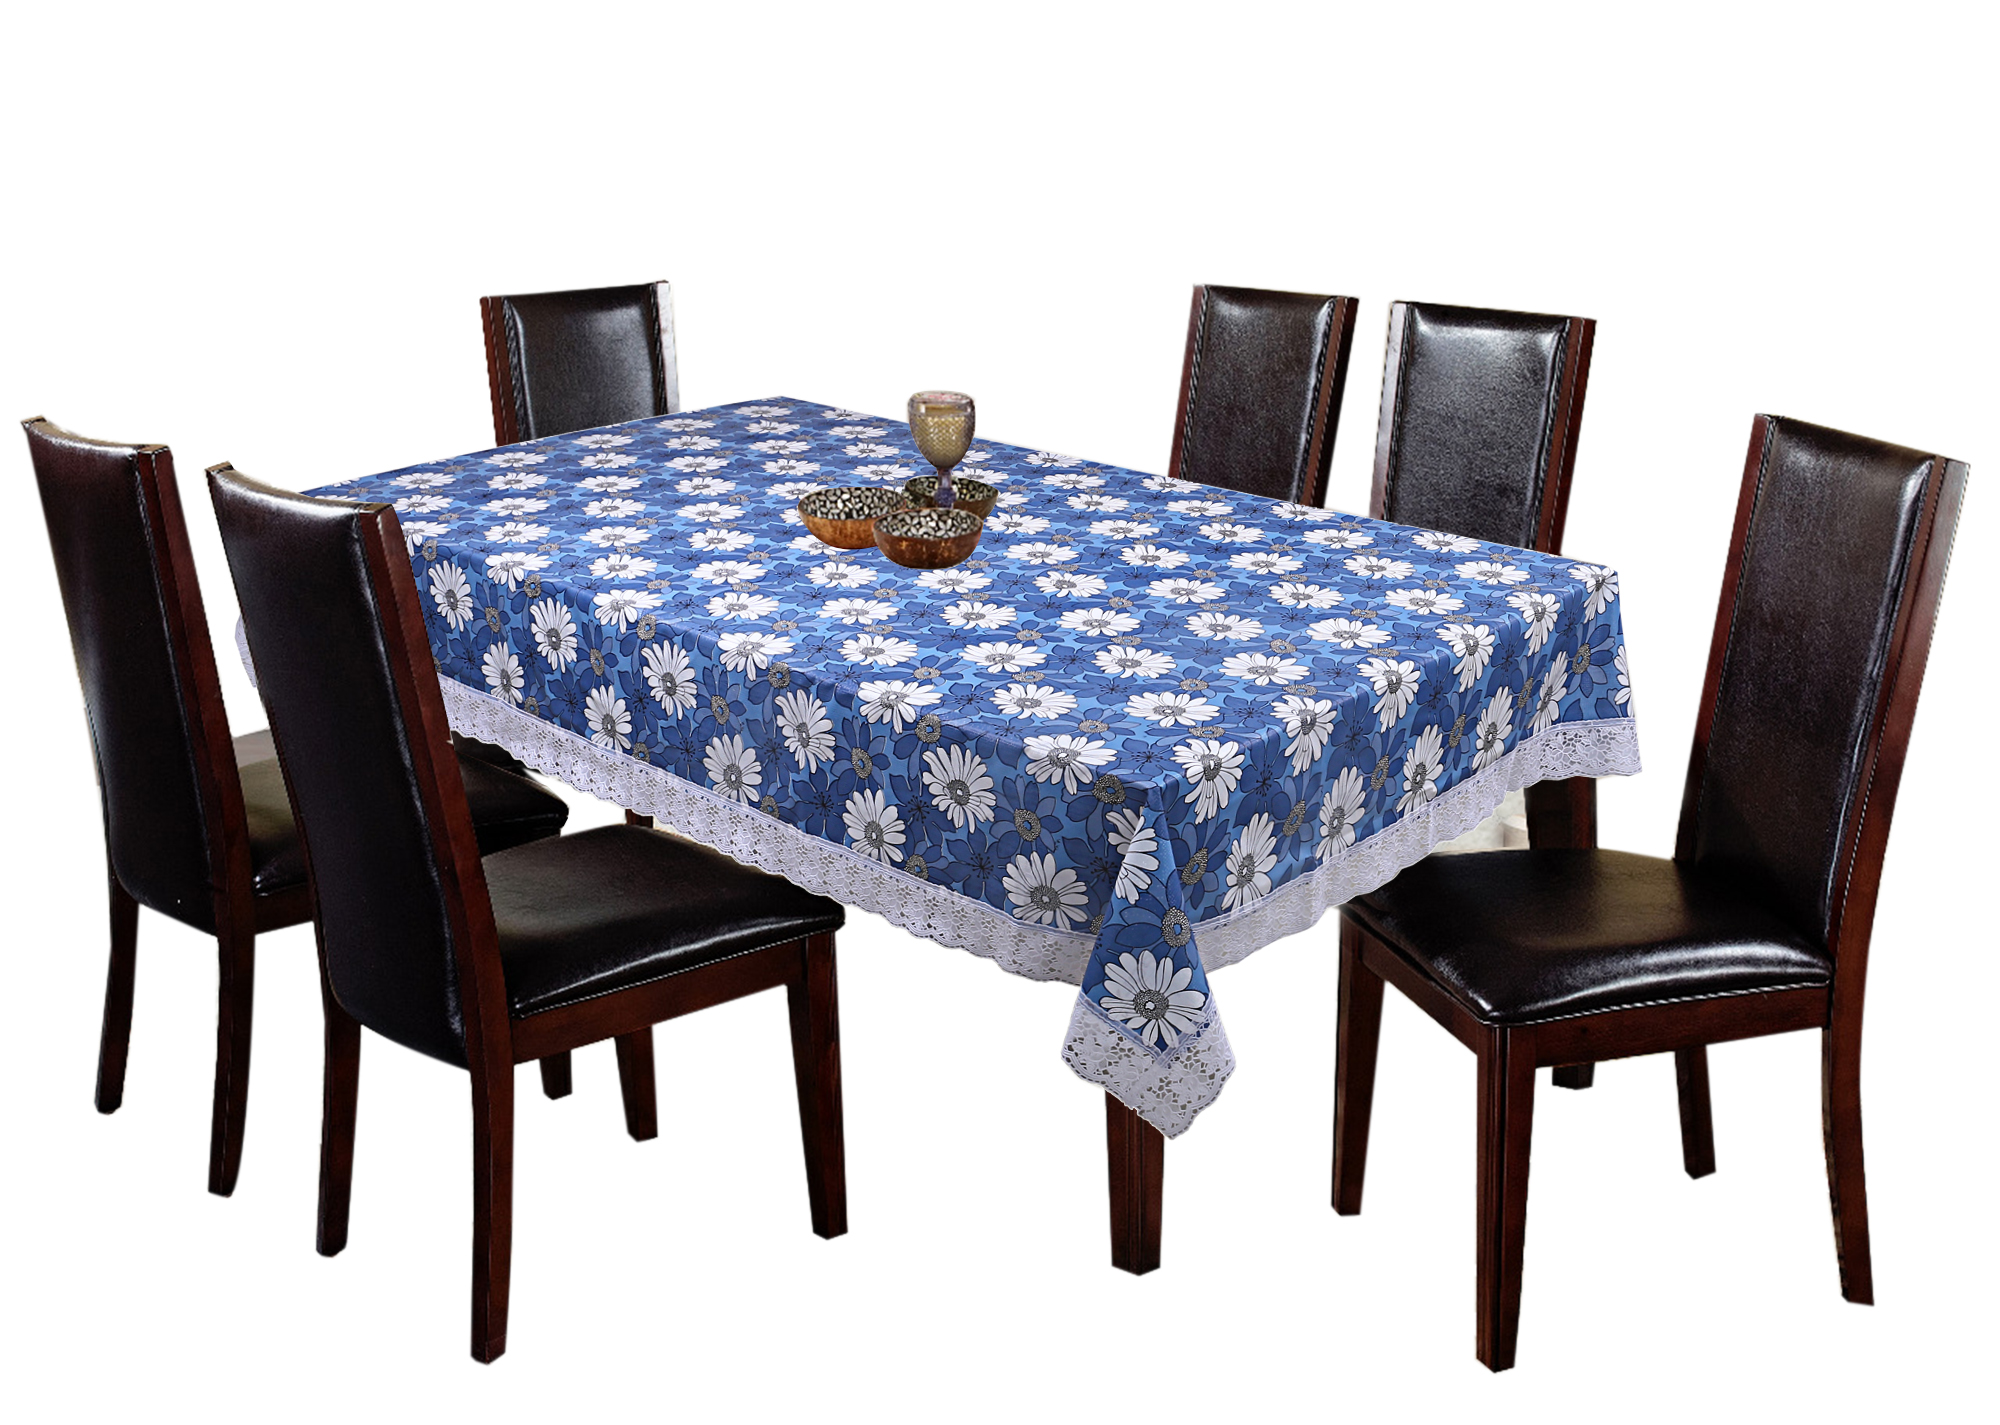 Kuber Industries Flower Design Pvc 6 Seater Dining Table Cover Blue 60 90 Inches